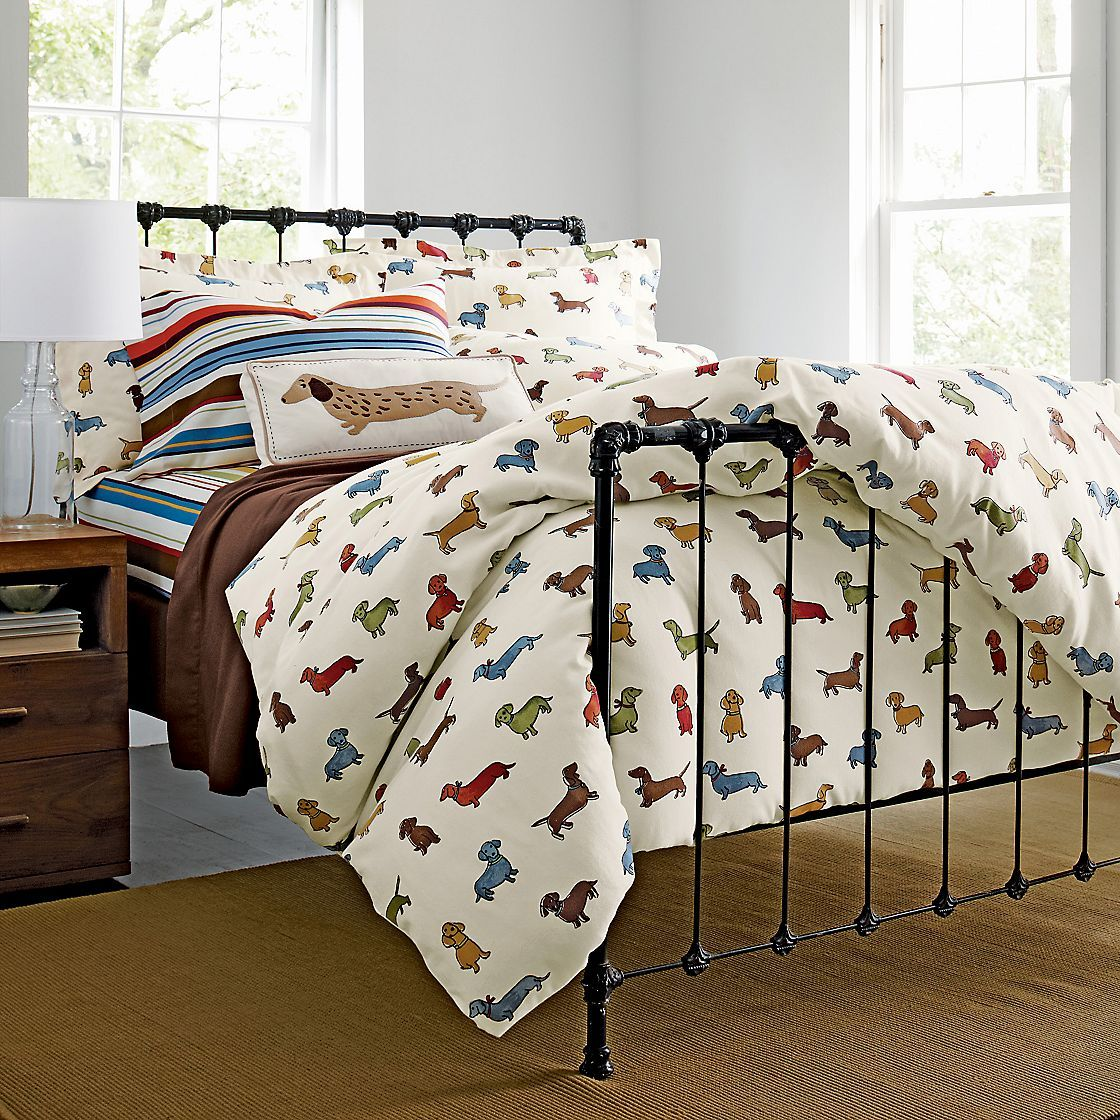 Weenie Dog Bedding! This would be so cute for a kids room